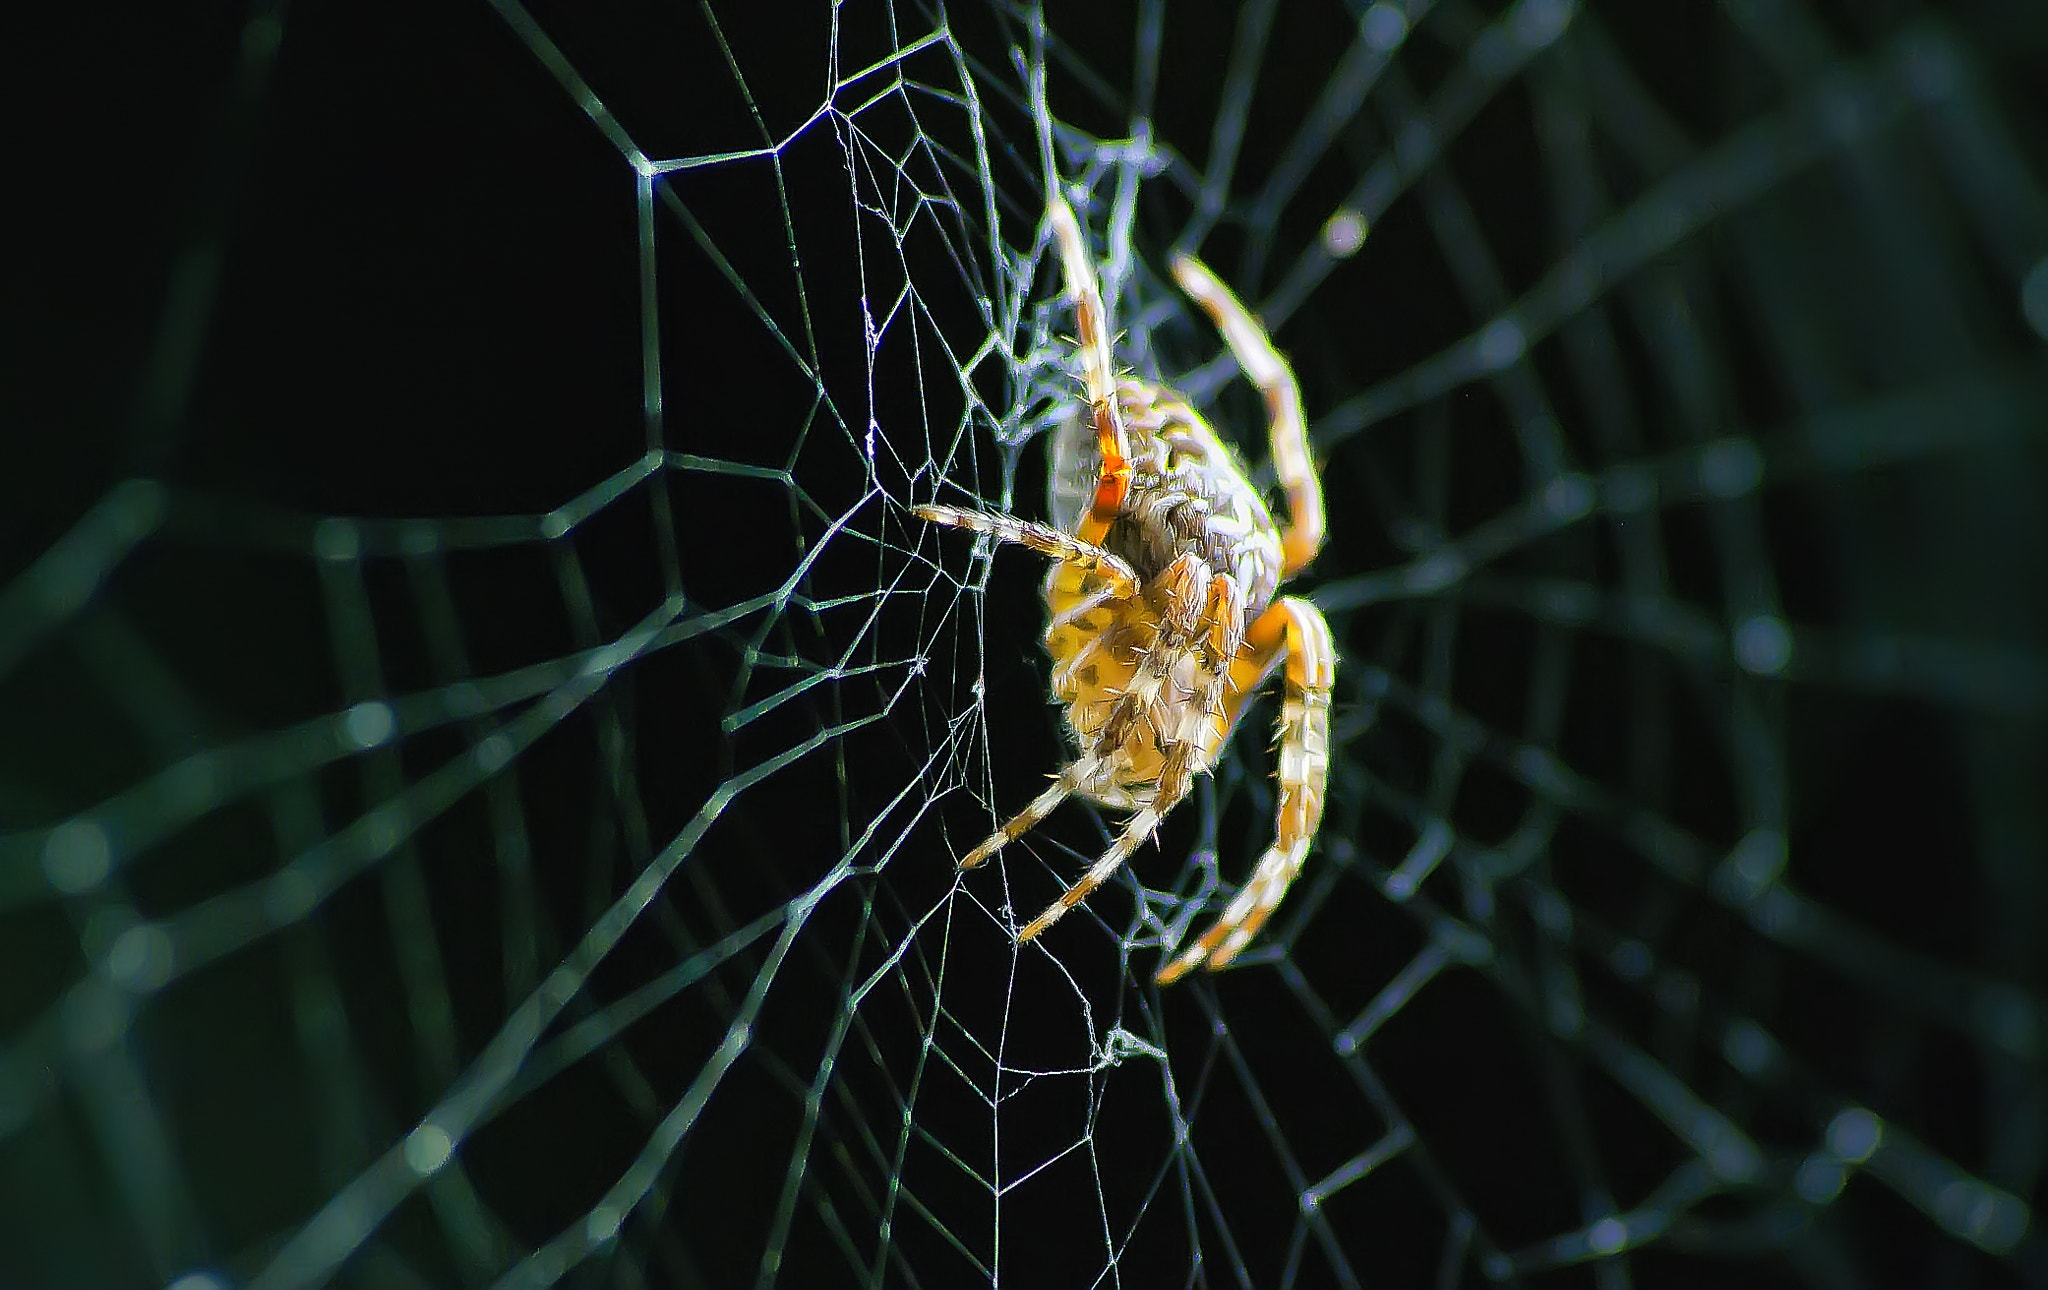 Photograph SPIDER NIGHT by Giacomo Zannini on 500px